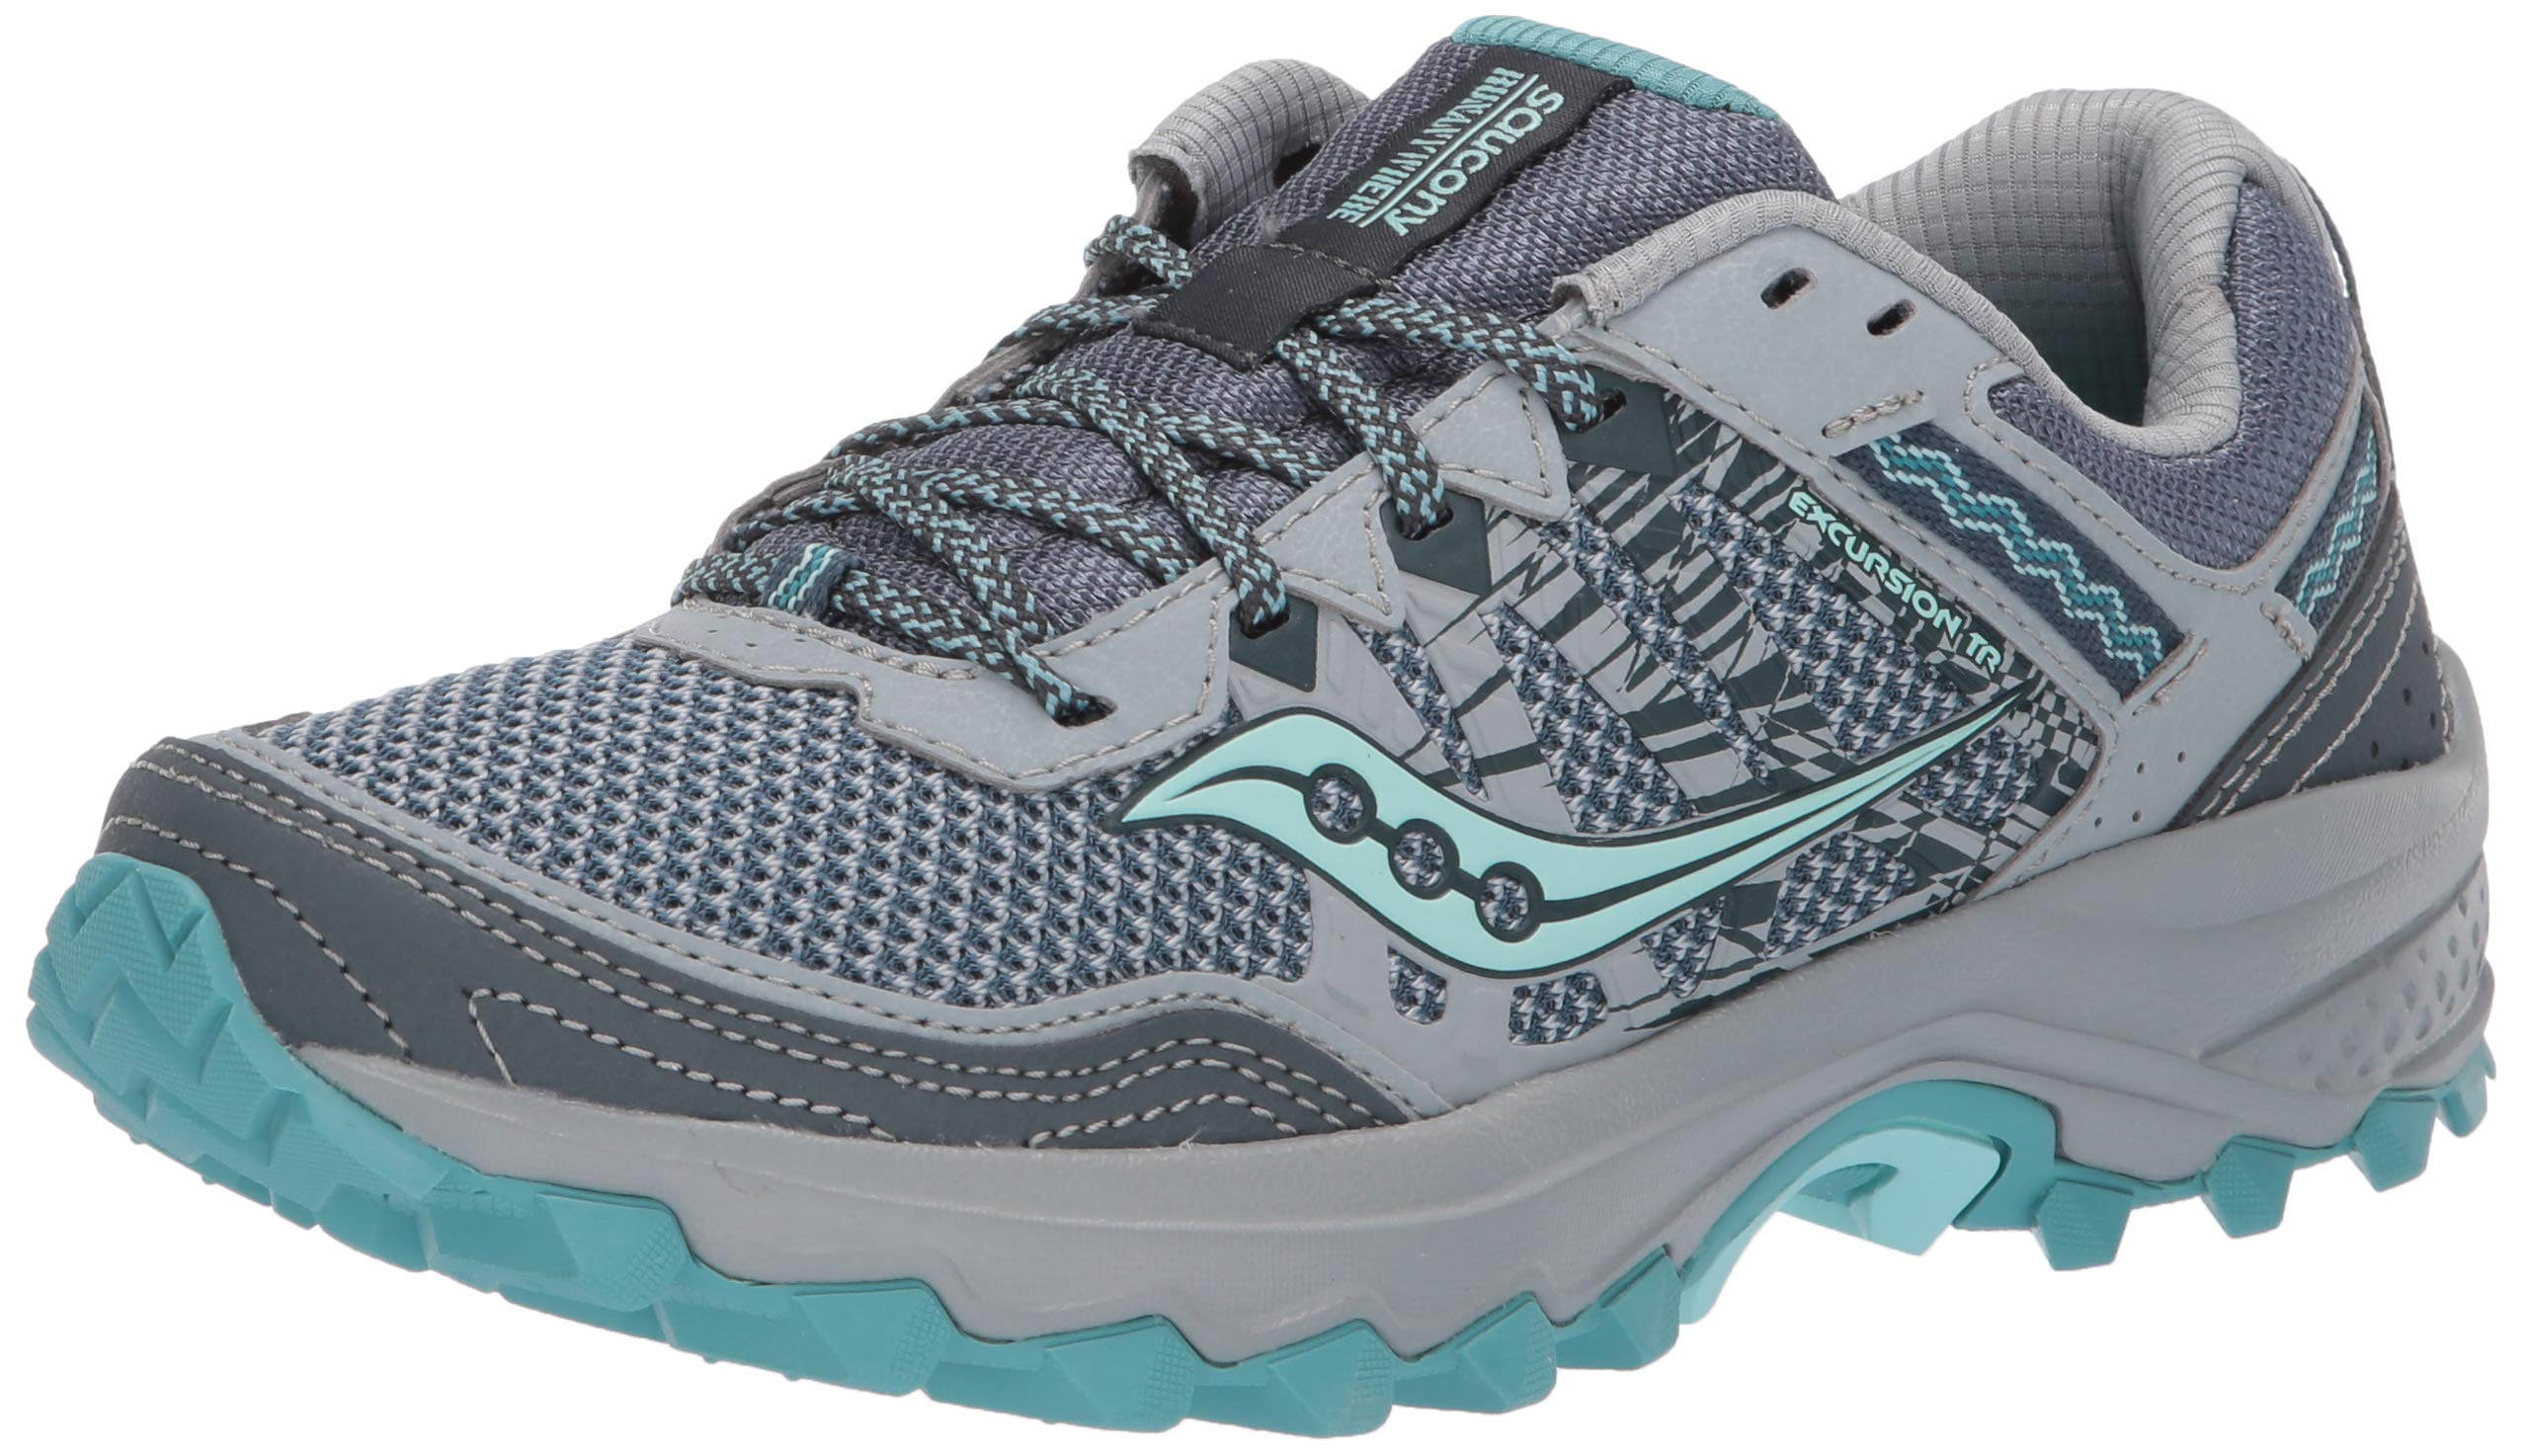 Saucony Women's Grid Excursion TR12 Trail Running Shoe, Grey/Teal, 5 M US